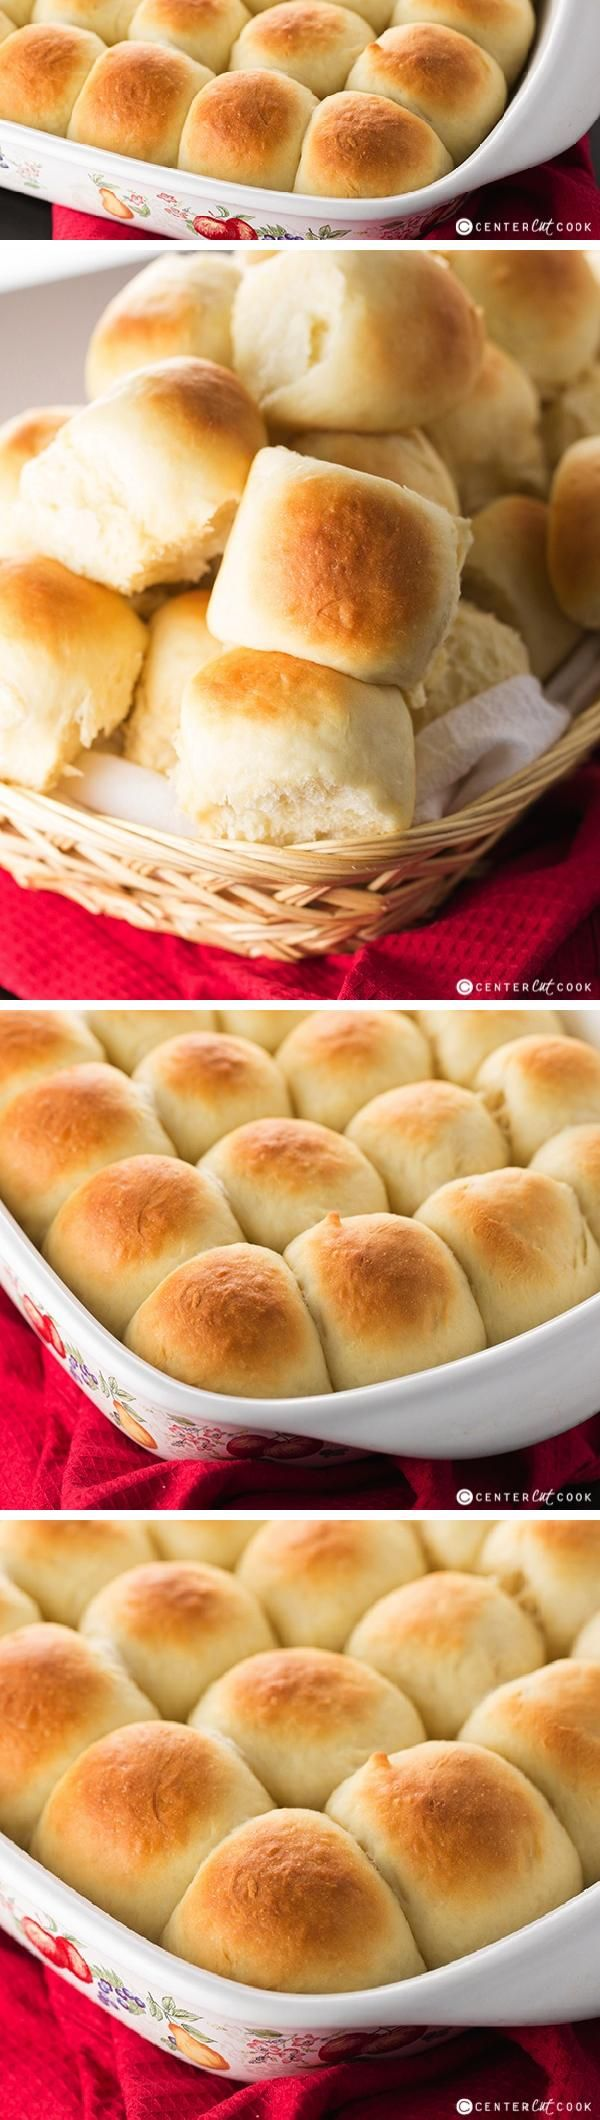 Fast and Easy Dinner Rolls made from scratch! No bread machine required! Fresh and warm, right out of the oven, these basic homemade dinner rolls are irresistable!